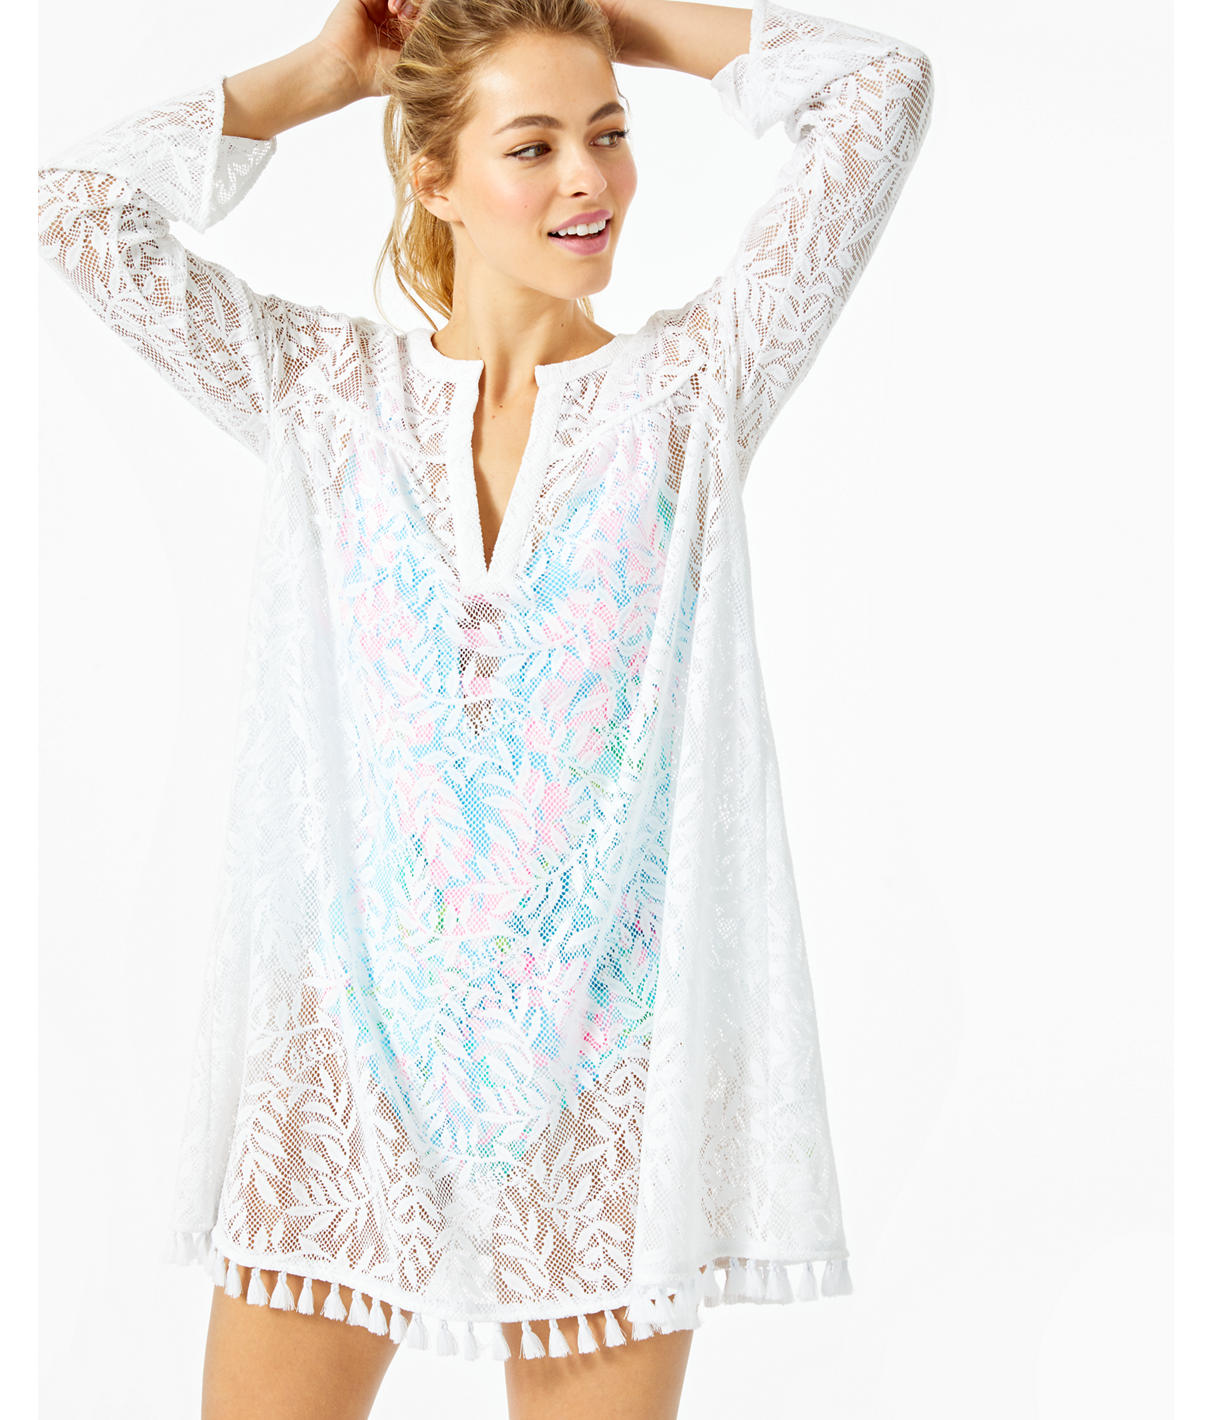 Lilly Pulitzer Kizzy Cover-up In Resort White Swirling Leaf Lilly Lace